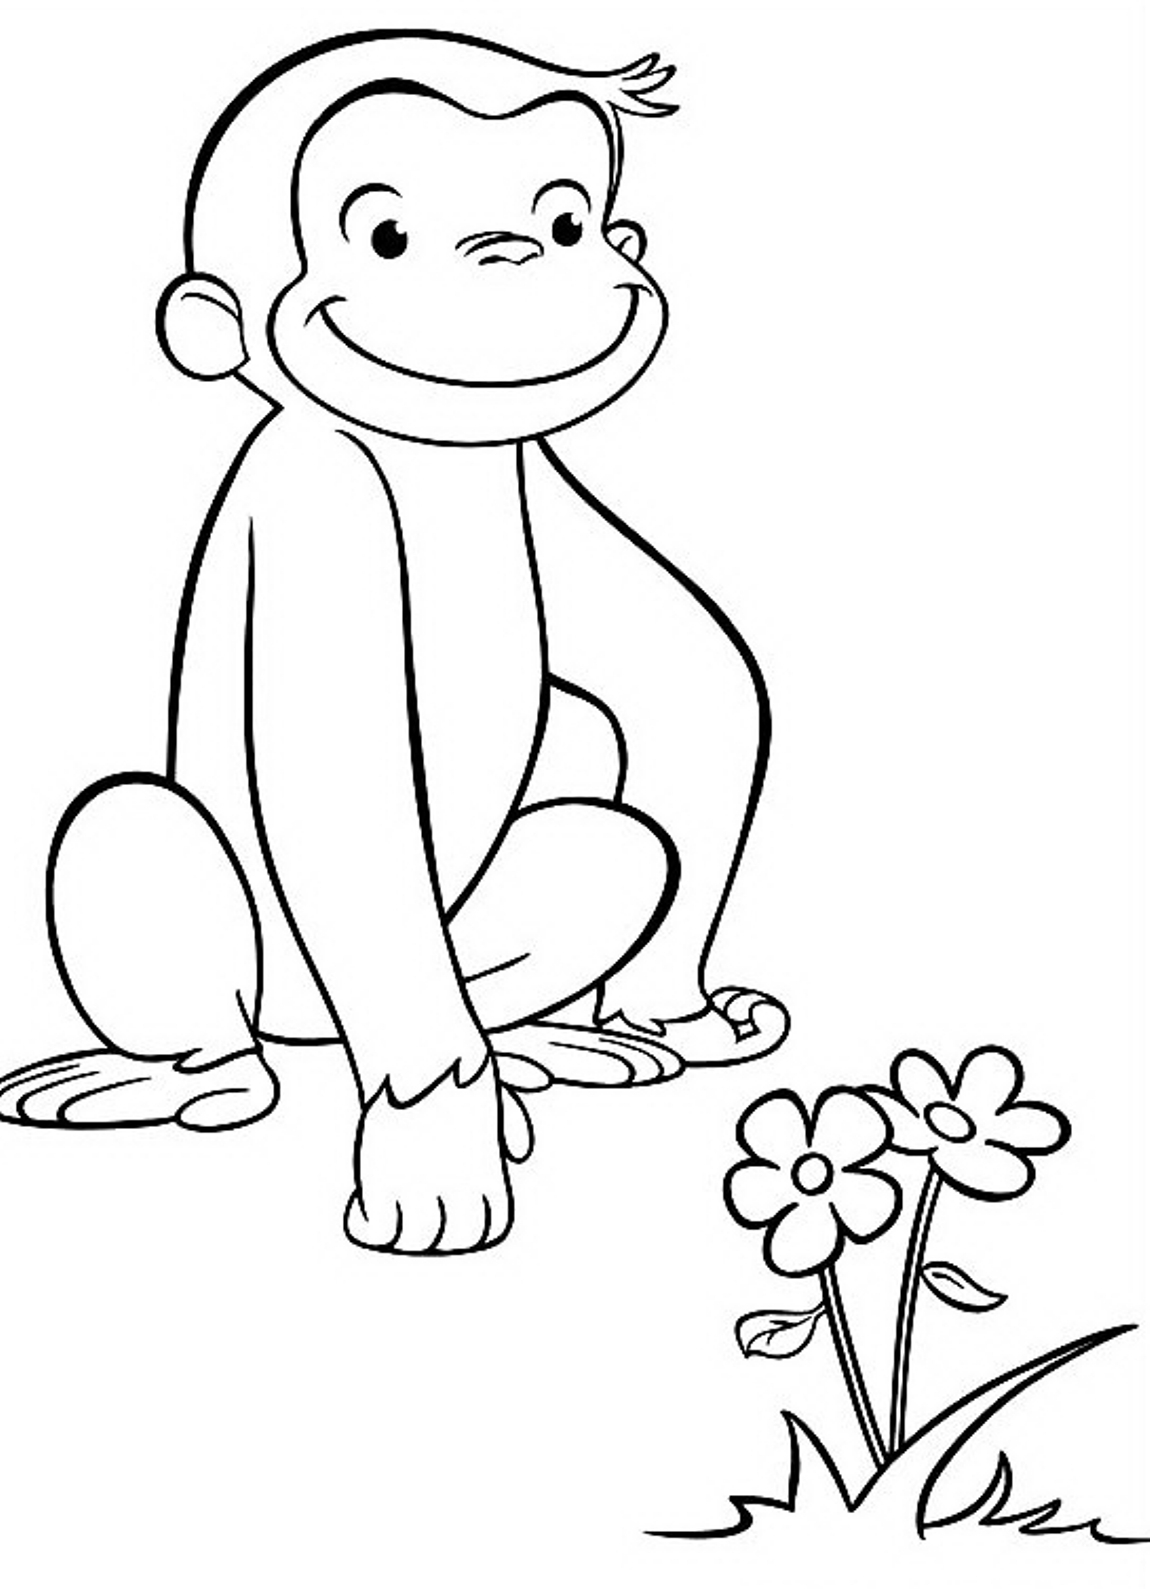 curious george coloring pages curious george coloring pages best coloring pages for kids george coloring pages curious